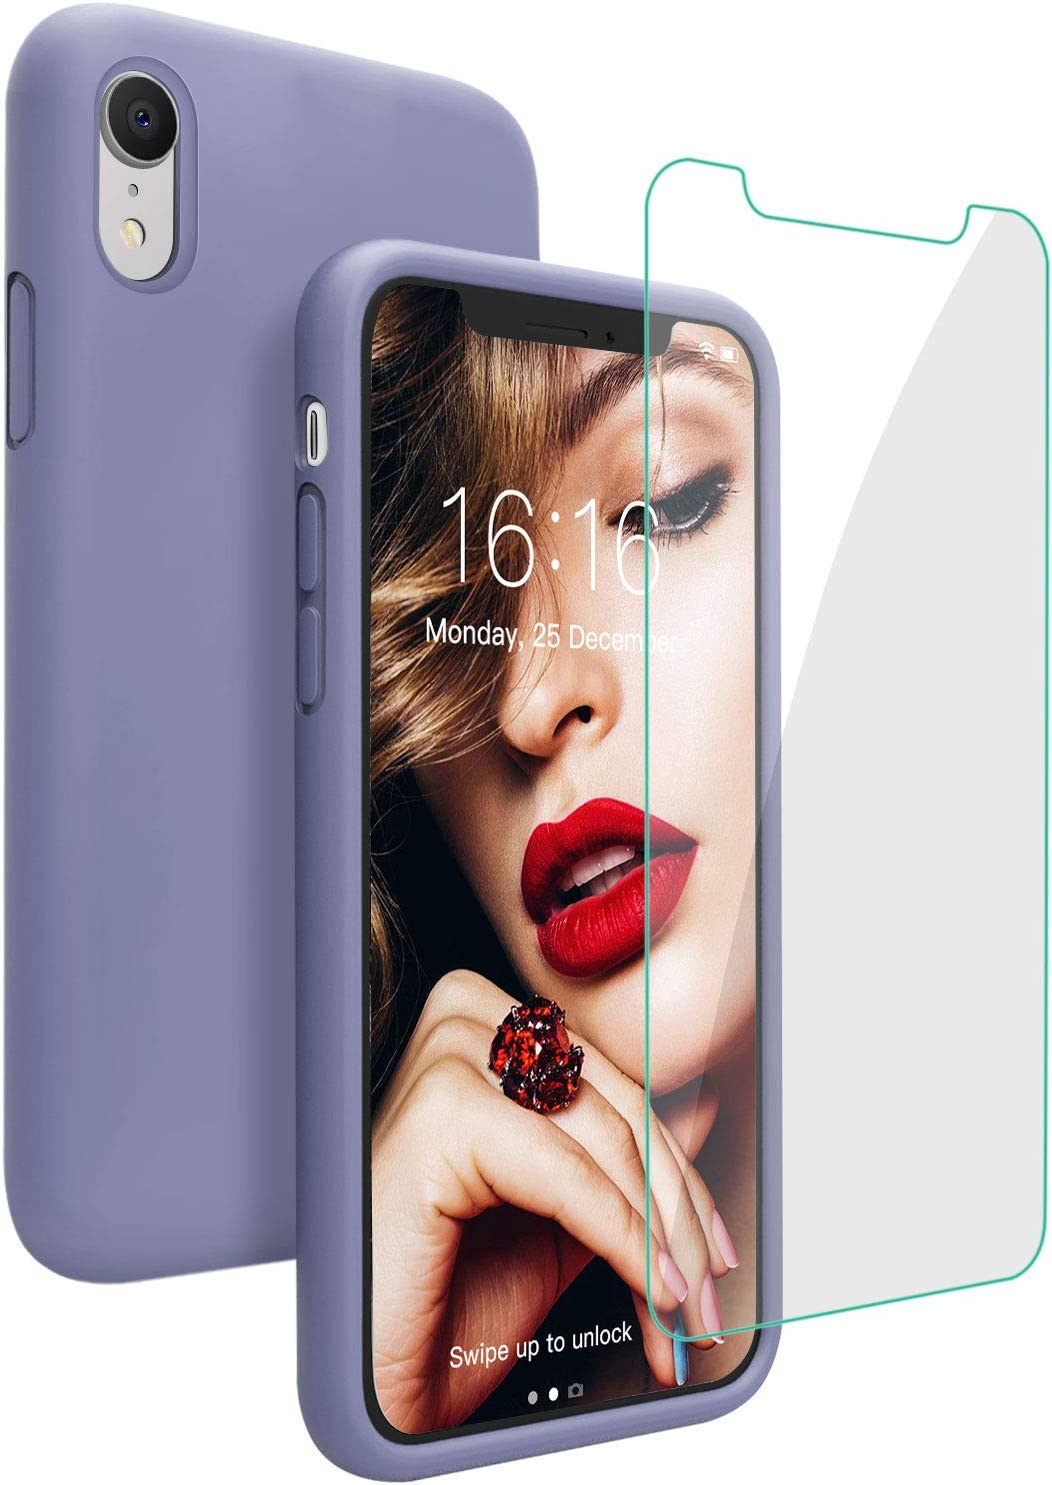 JASBON Case for iPhone XR, Soft Liquid Silicone iPhone XR Case with Tempered Glass Cover for Apple XR-Lavender